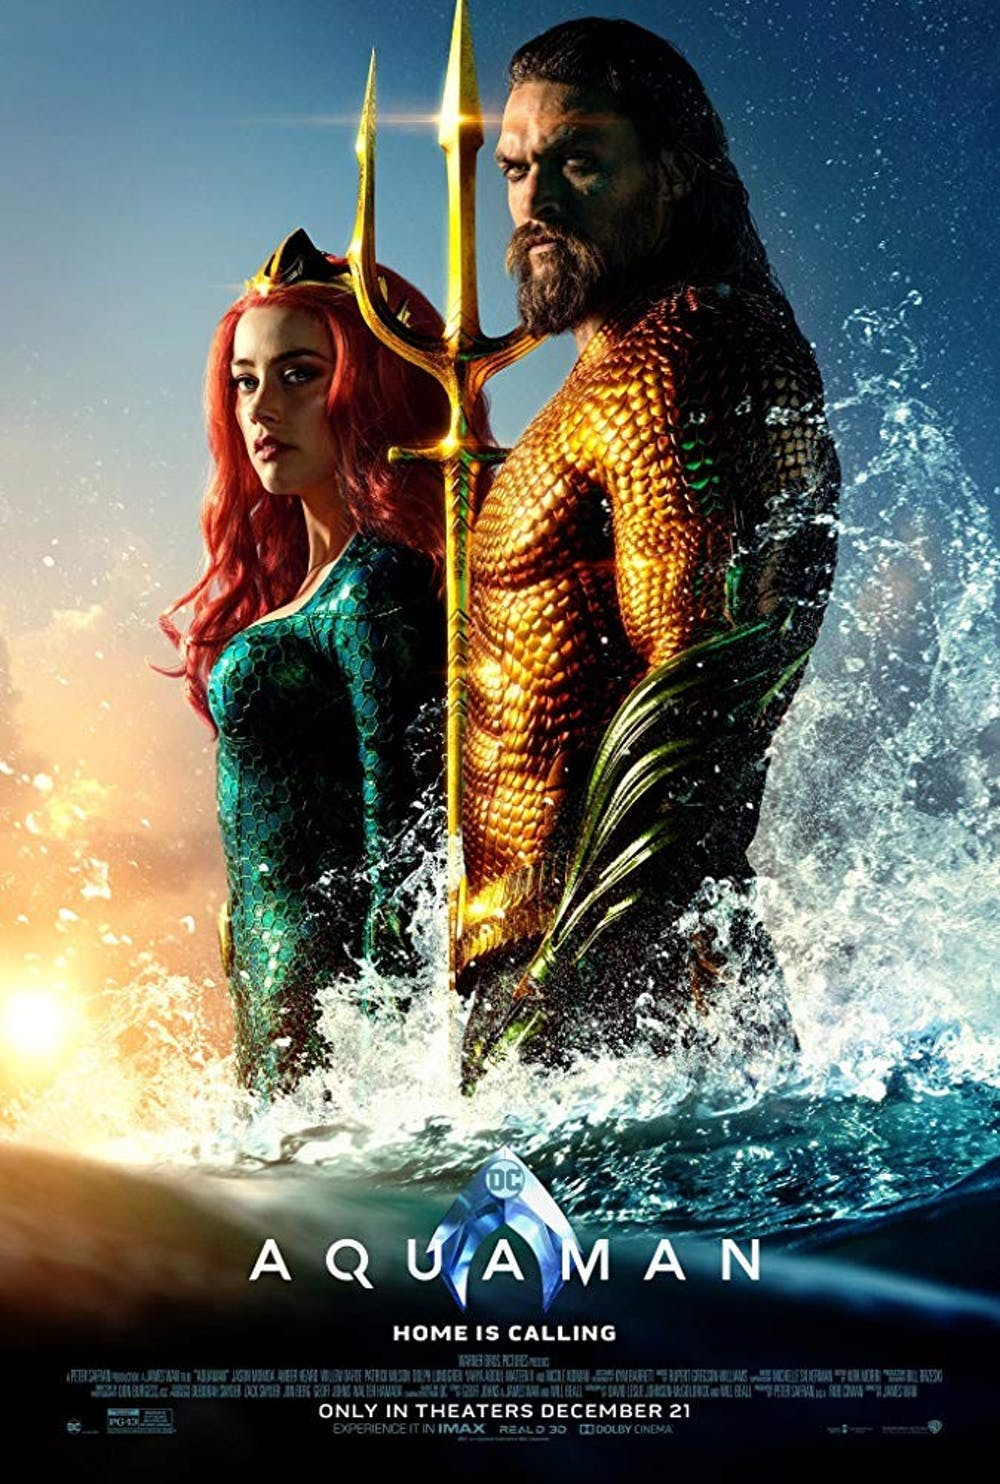 Aquaman is a sea of bliss